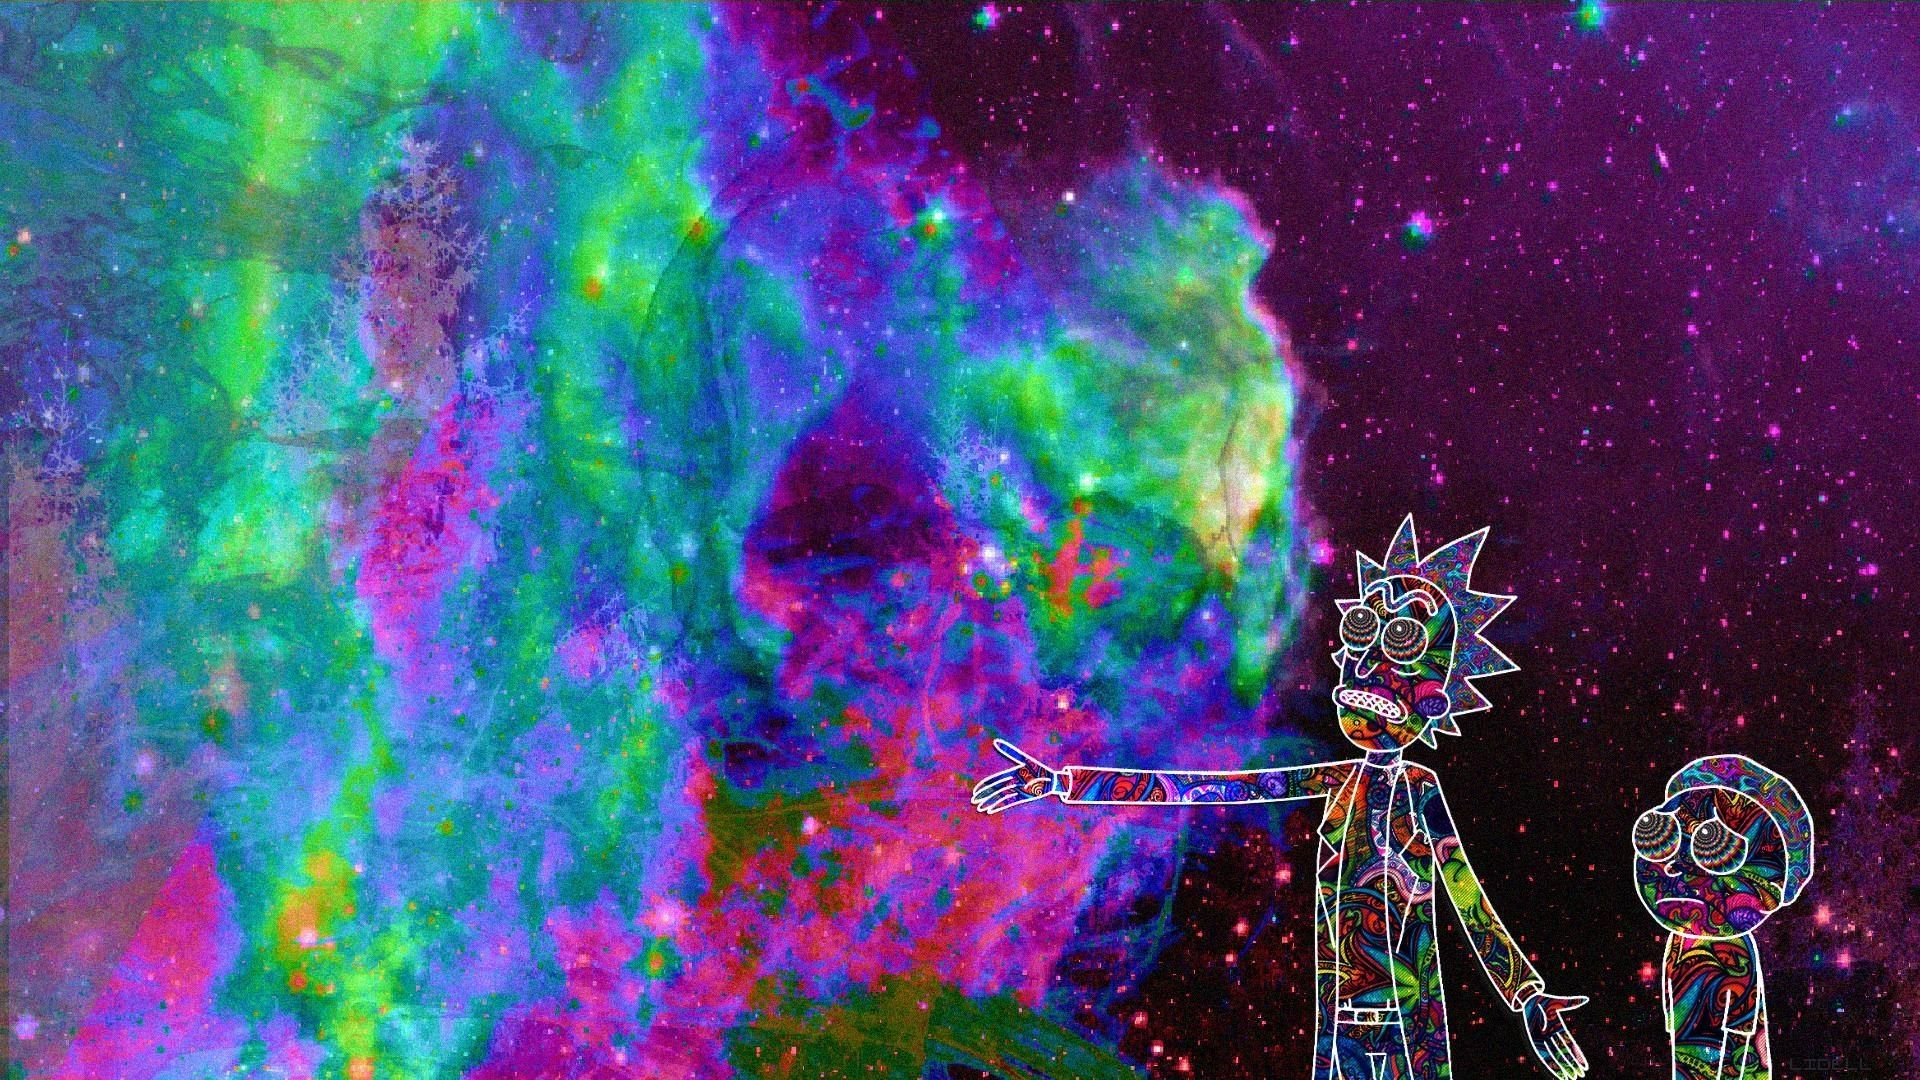 Rick And Morty Desktop Wallpapers 1920x1080 In 2019 For Incredible Rick And Morty Wallpaper 192 In 2020 Desktop Wallpaper 1920x1080 Computer Wallpaper Trippy Wallpaper